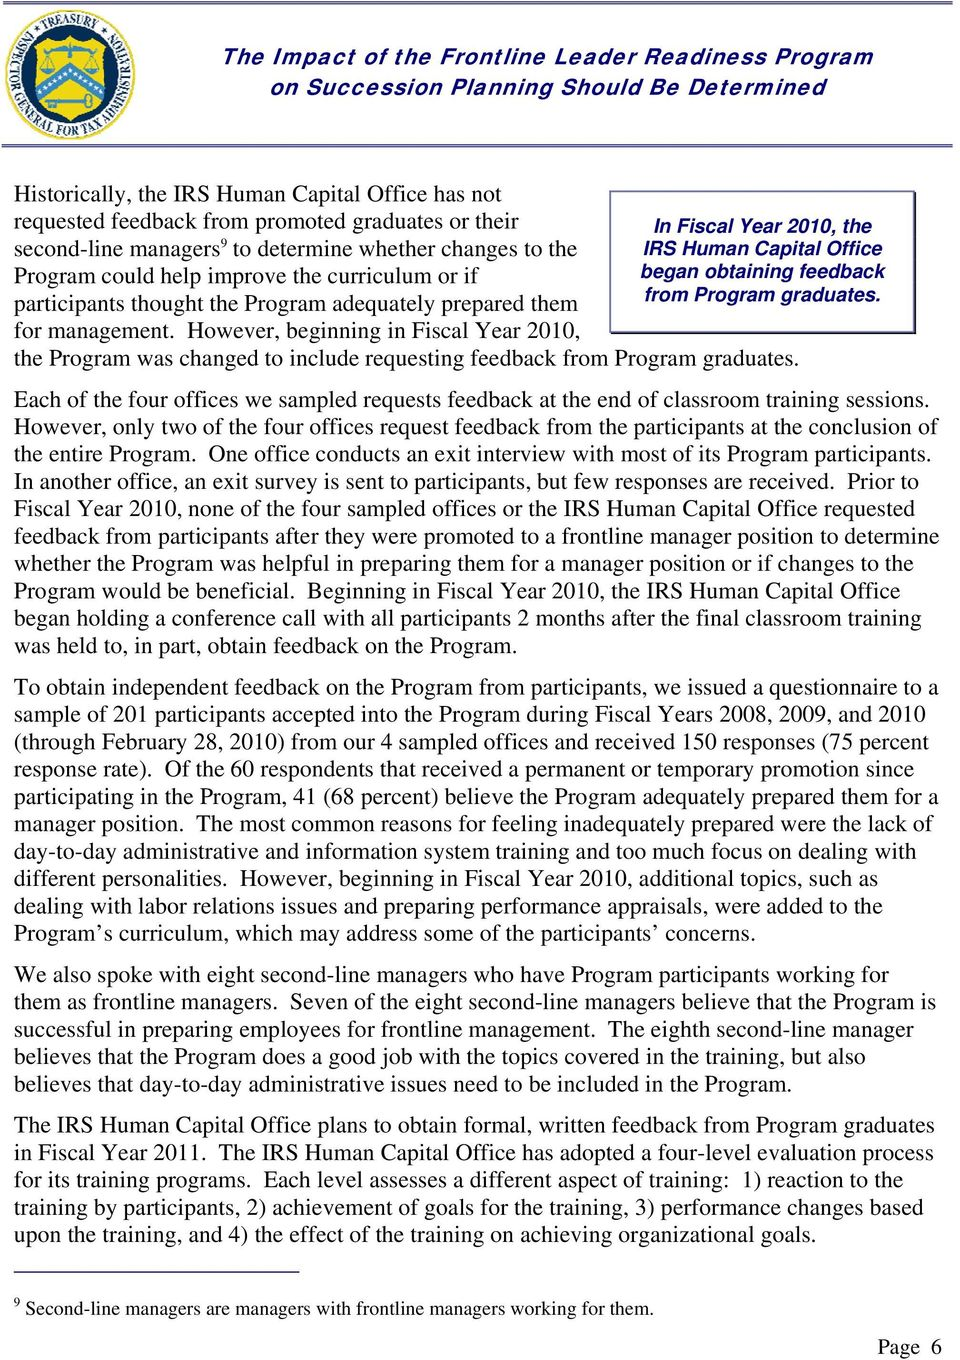 However, beginning in Fiscal Year 2010, the Program was changed to include requesting feedback from Program graduates.